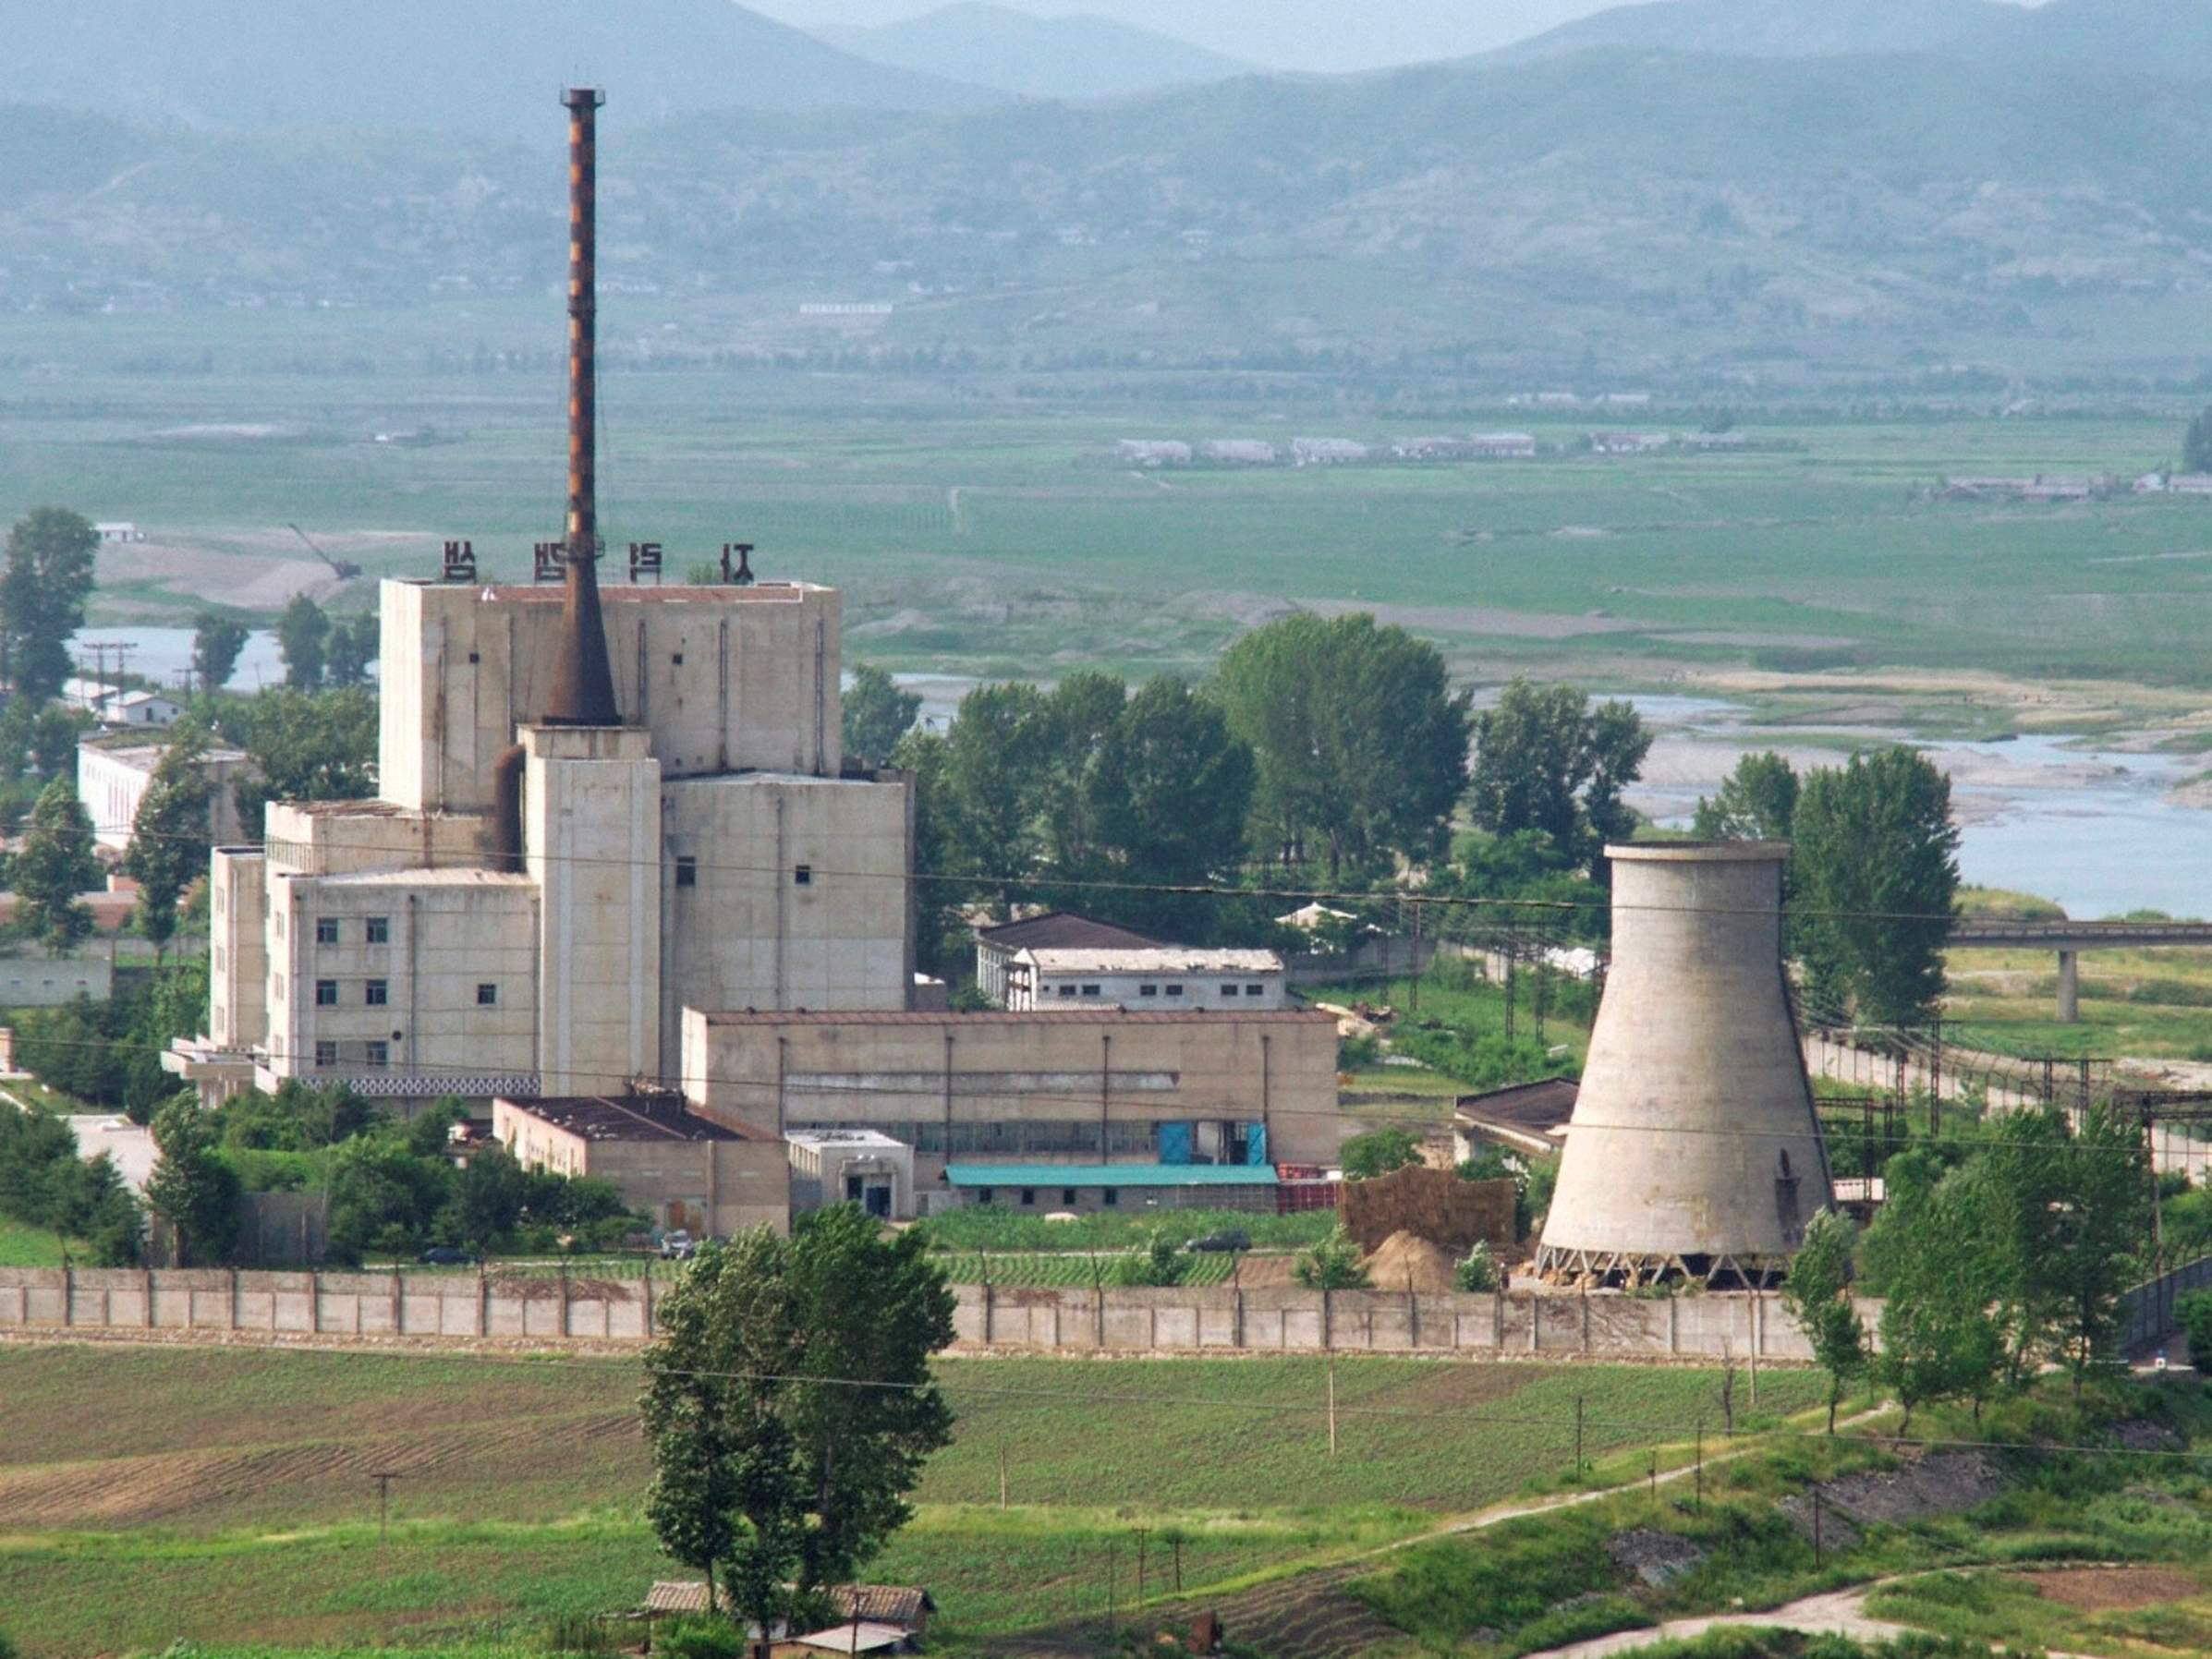 A North Korean nuclear plant is seen in Yongbyon, in this photo taken June 27, 2008 and released by Kyodo.